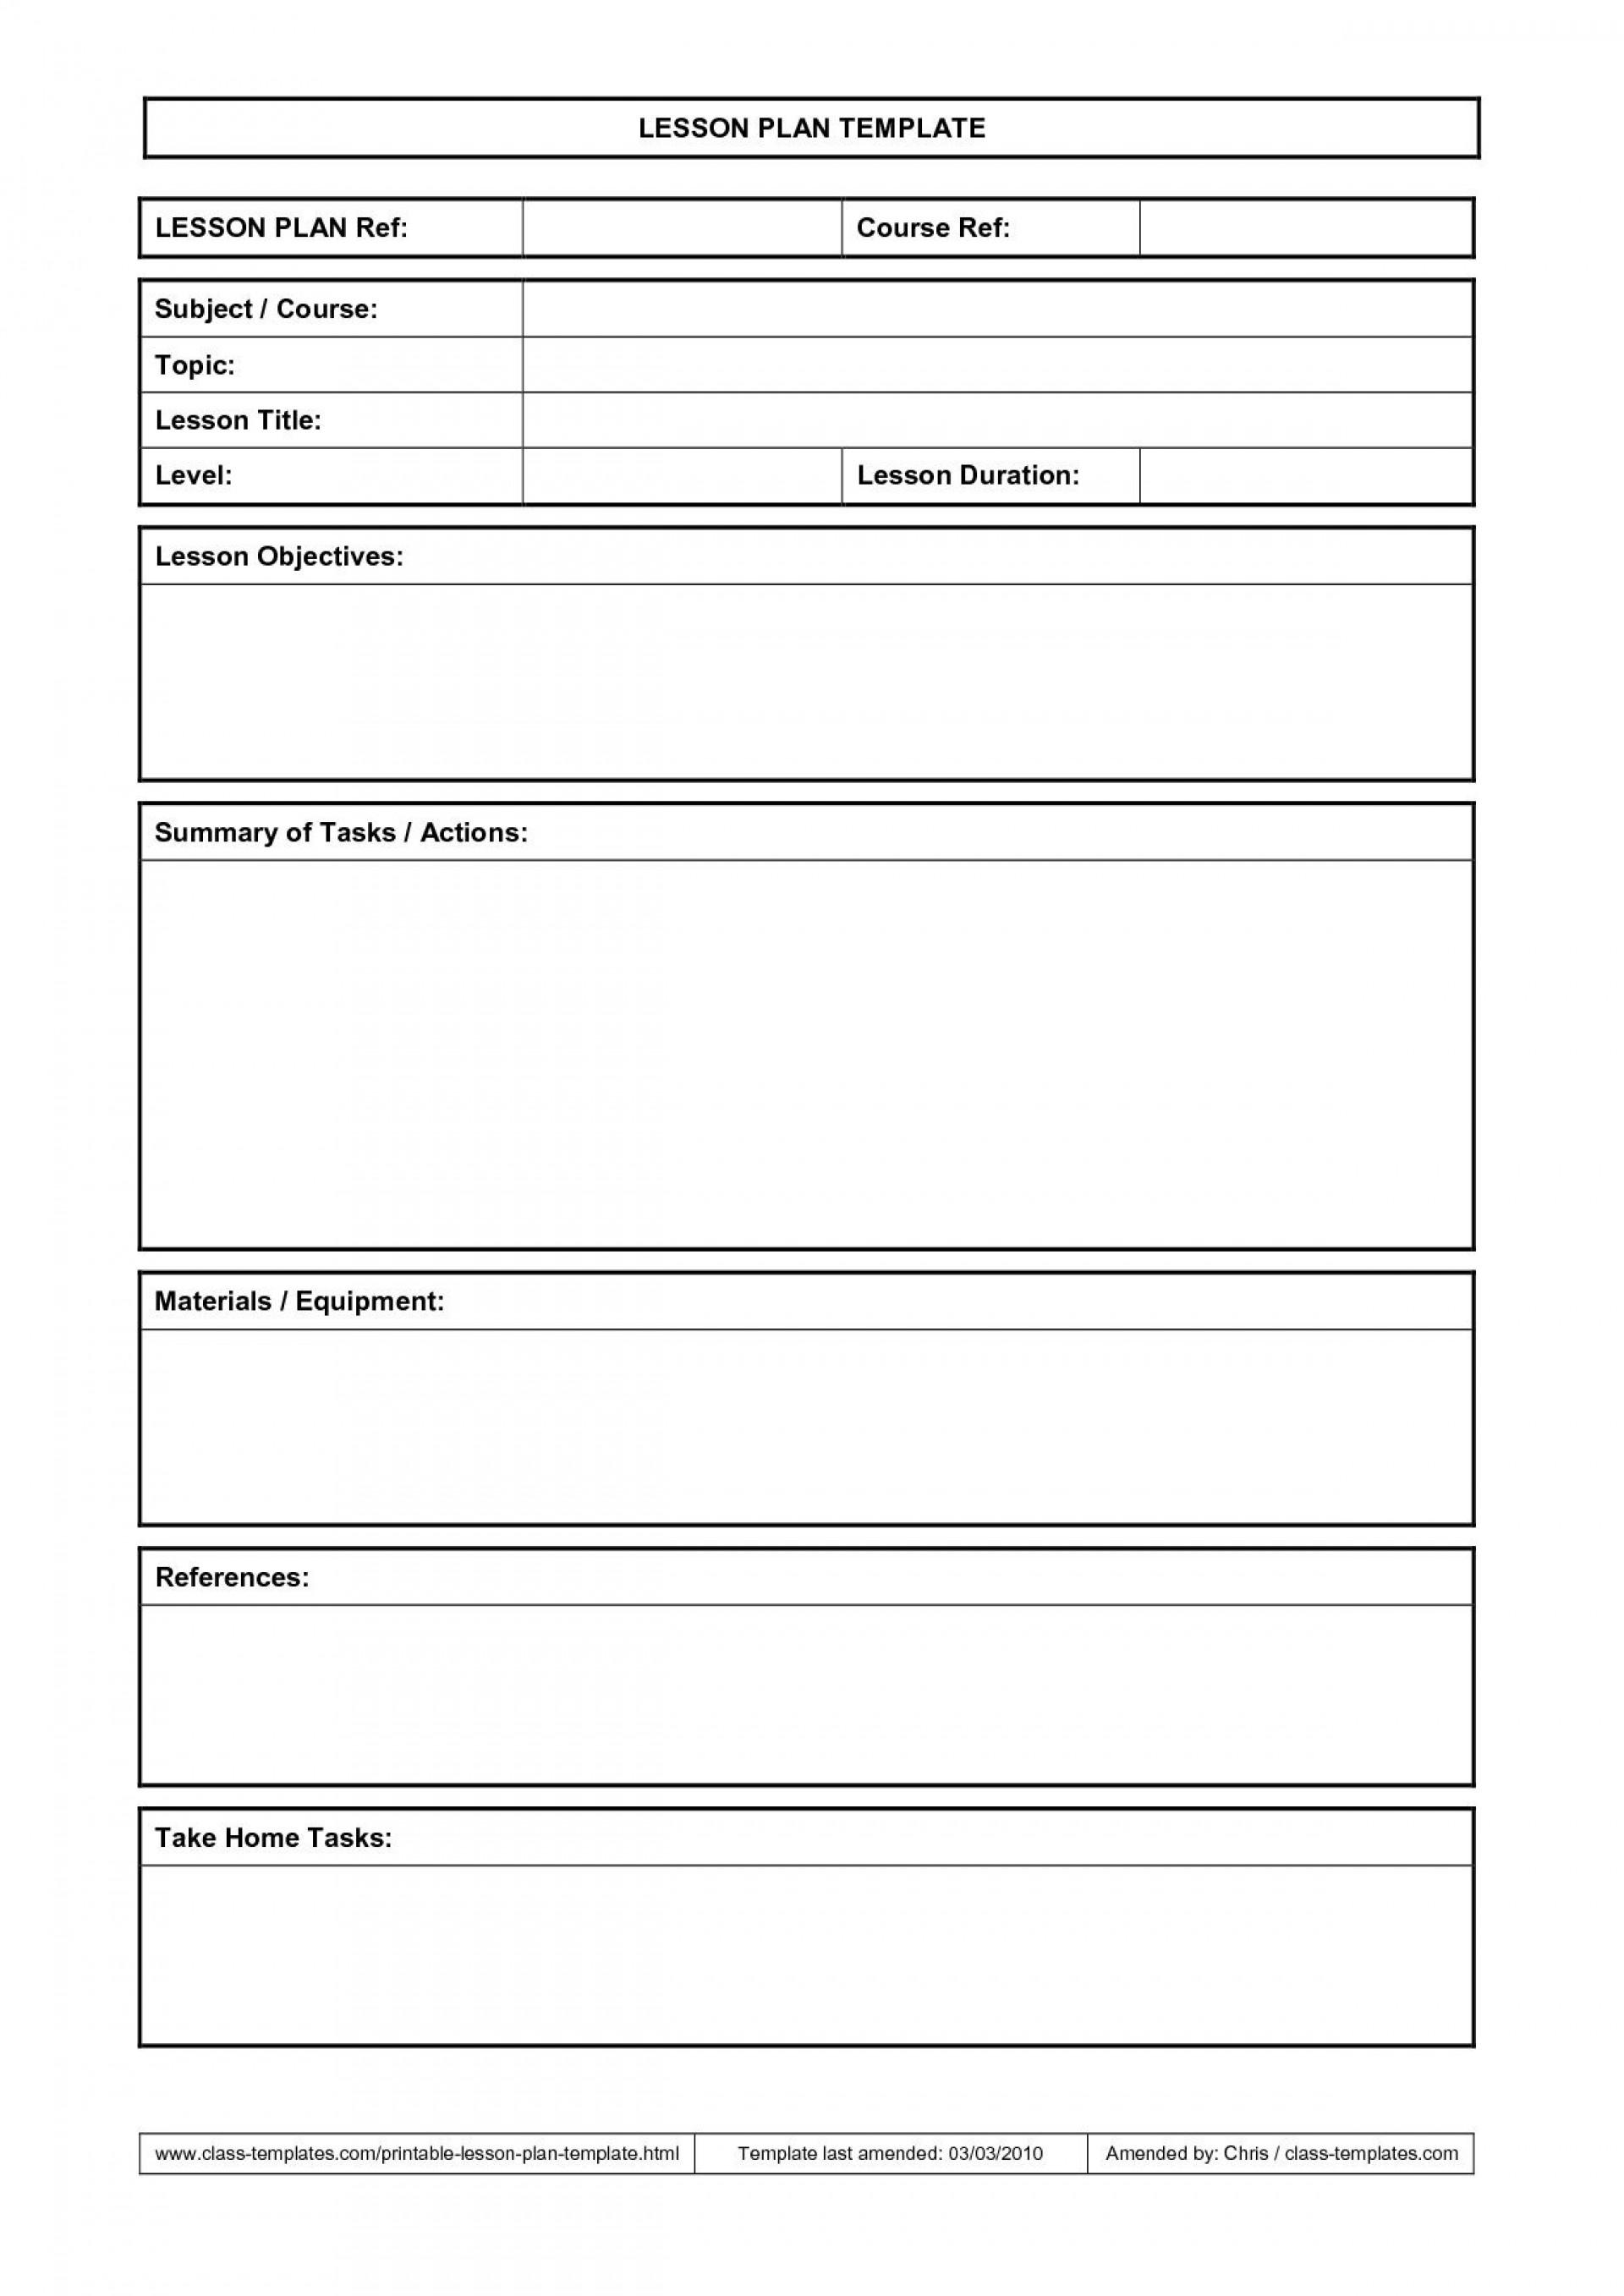 002 Fascinating Lesson Plan Template Pdf Inspiration  High School Editable Detailed Example1920